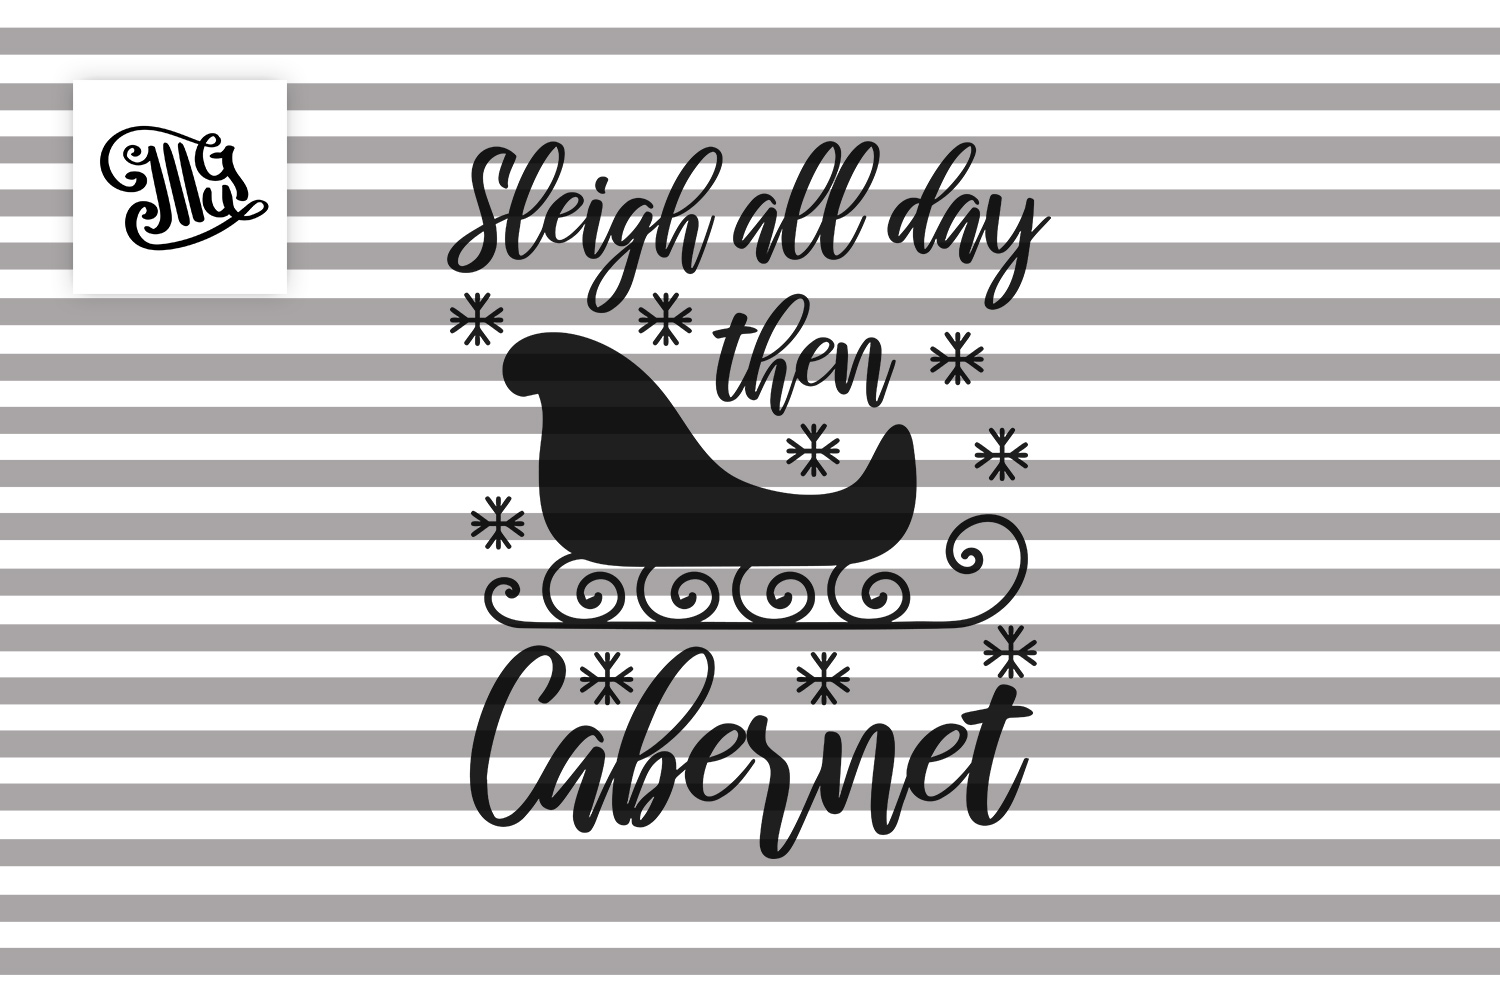 Sleigh all day then Cabernet - Christmas wine example image 2